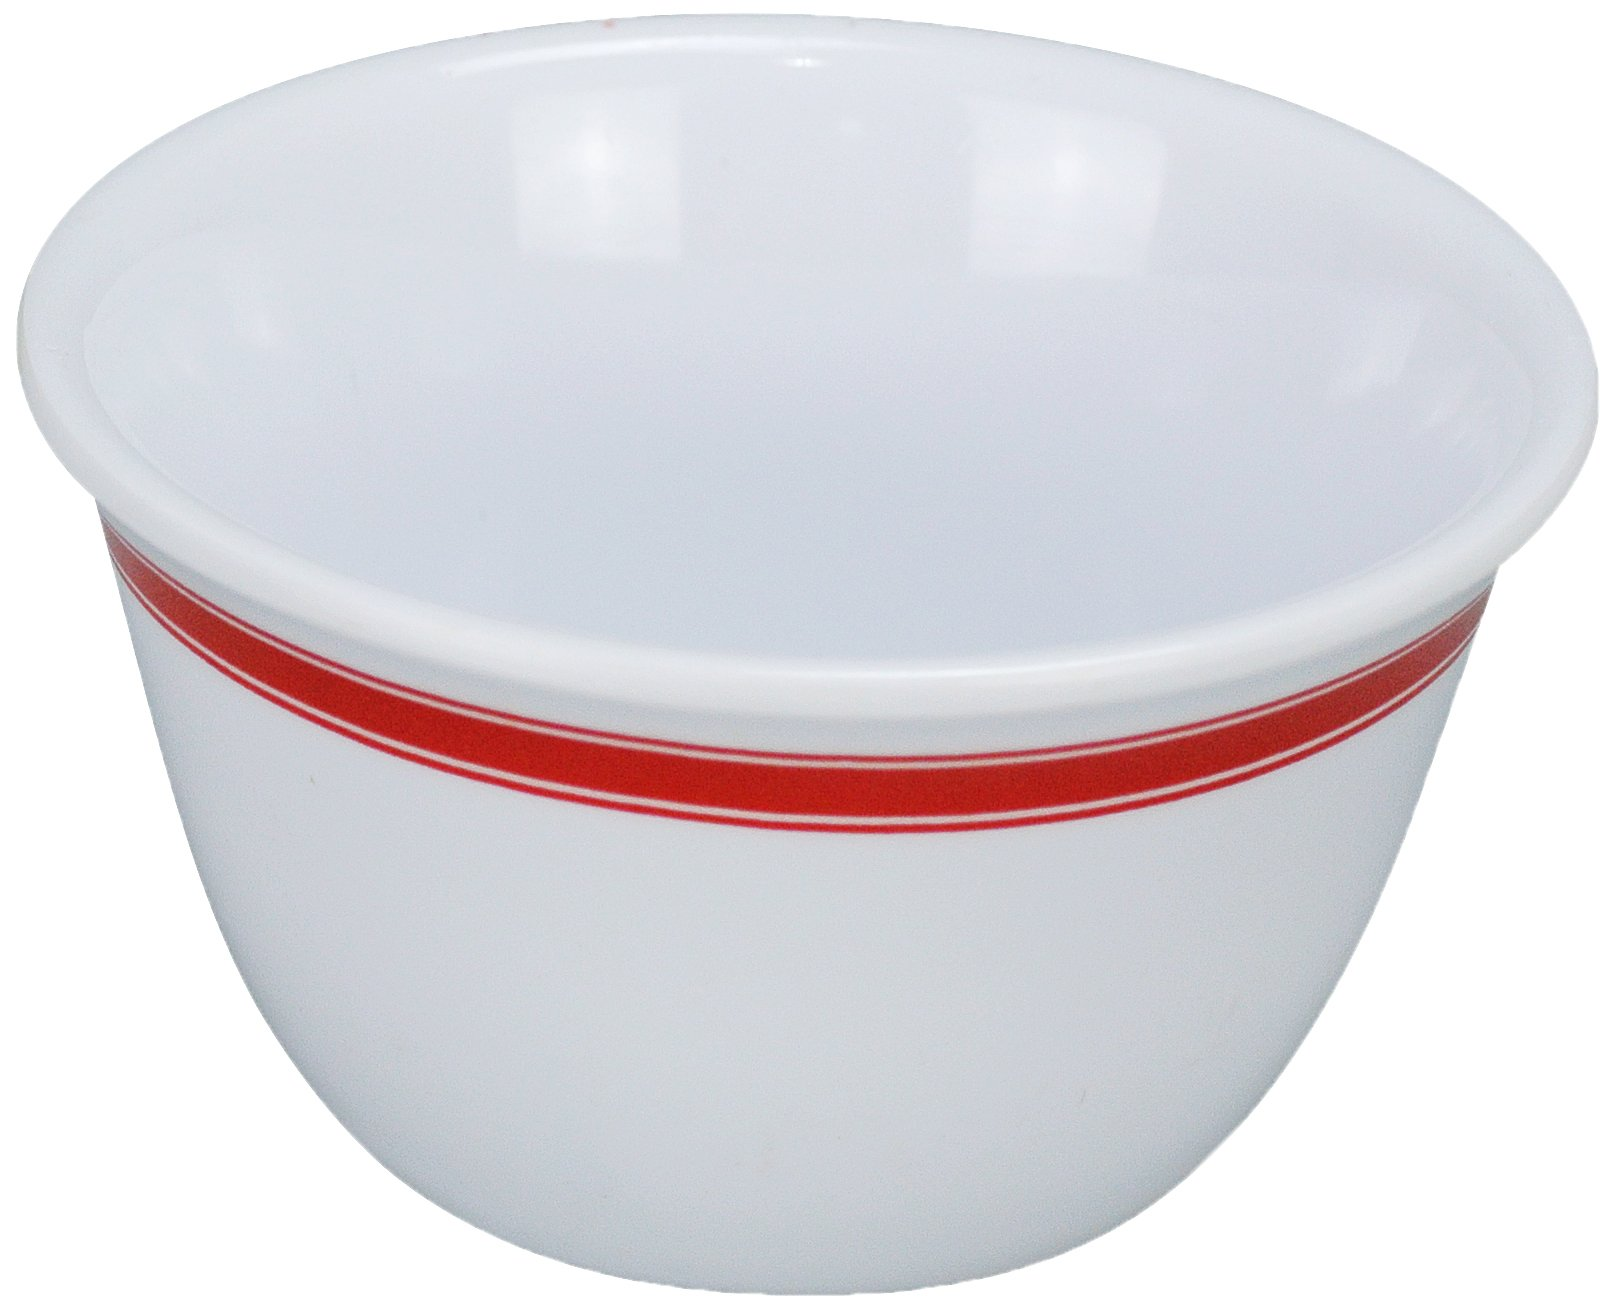 Yanco HS-303 Houston Bouillon Cup, 7 oz Capacity, Melamine, 2'' Height, 4'' Diameter, Pack of 48